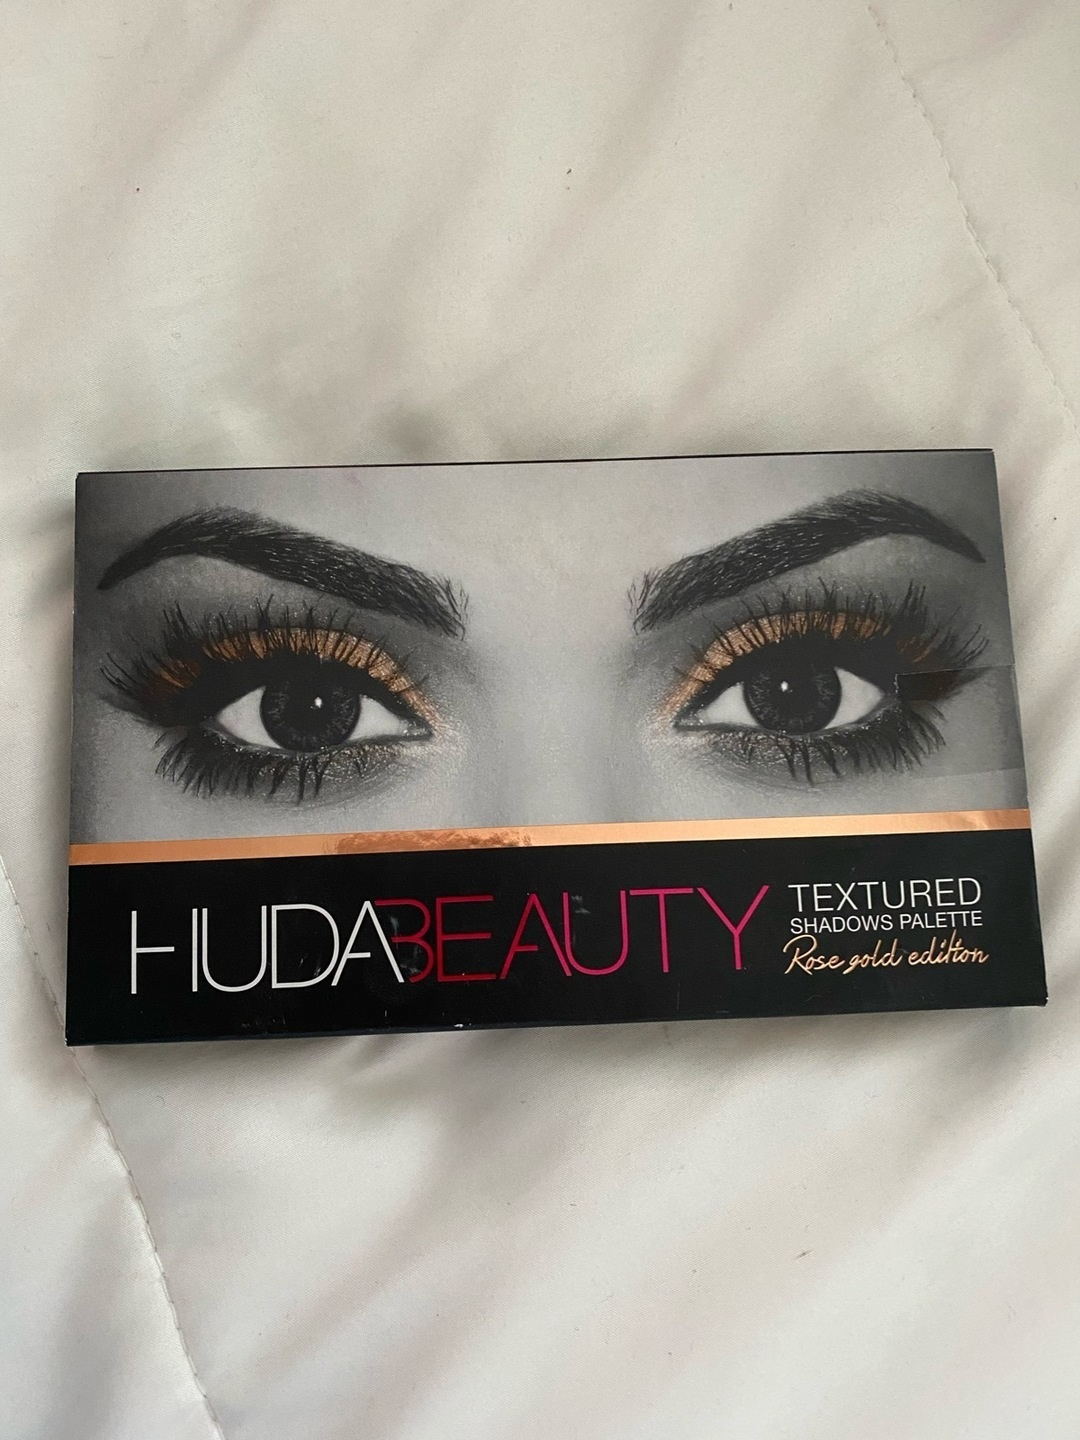 Damen kosmetik & schönheit - HUDA BEAUTY photo 2